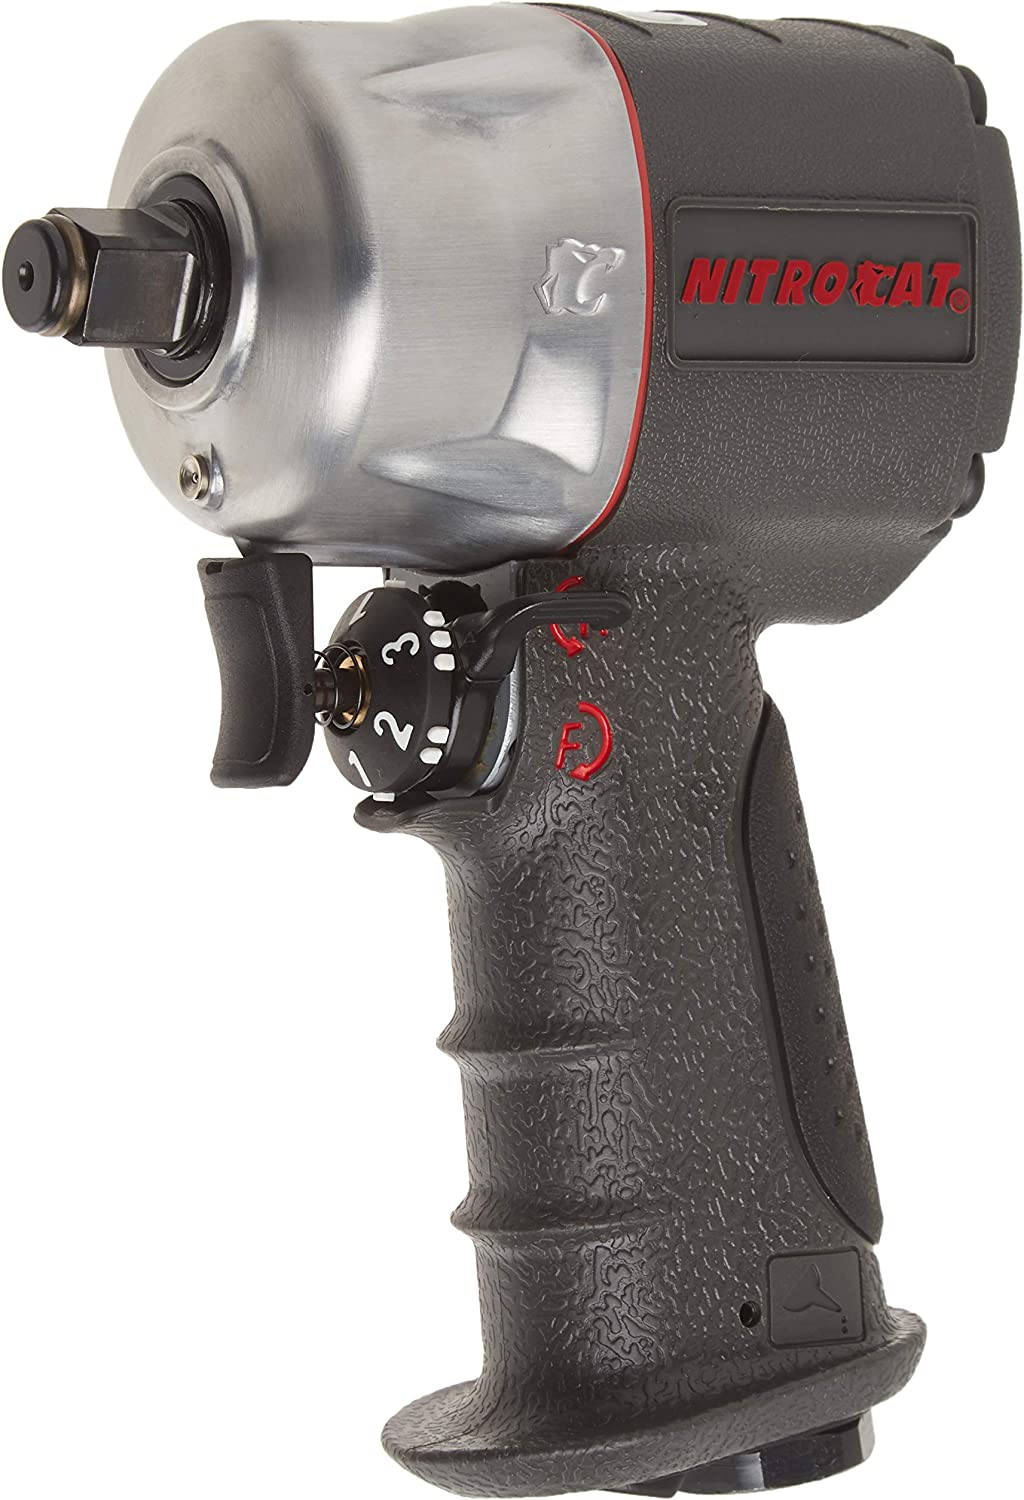 Aircat 1056-XL 1/2-Inch Composite Compact Impact Wrench